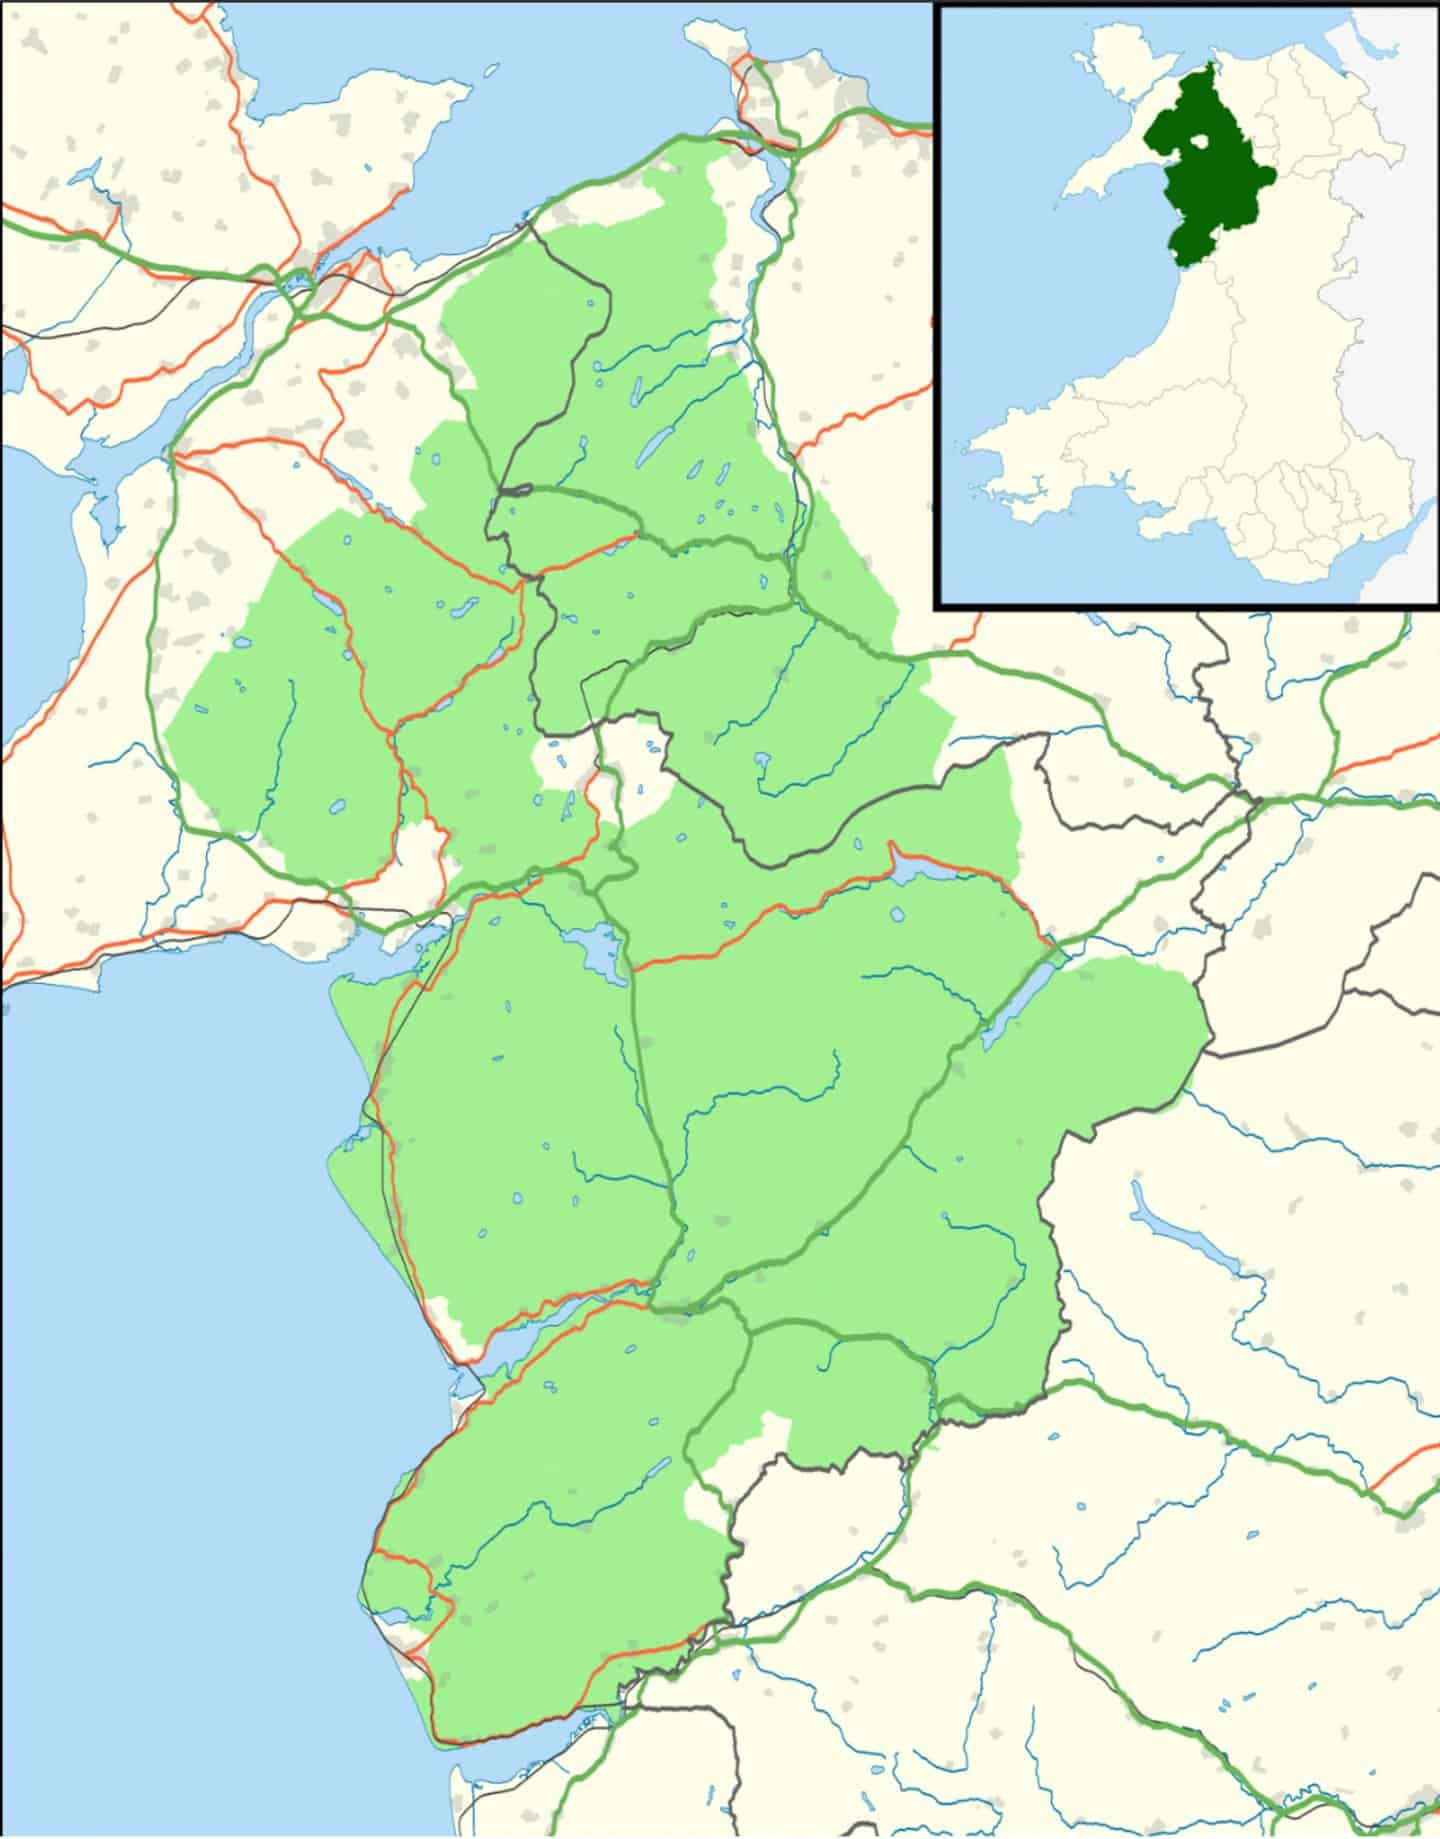 A map of the area Snowdonia National Park comprises in Wales.